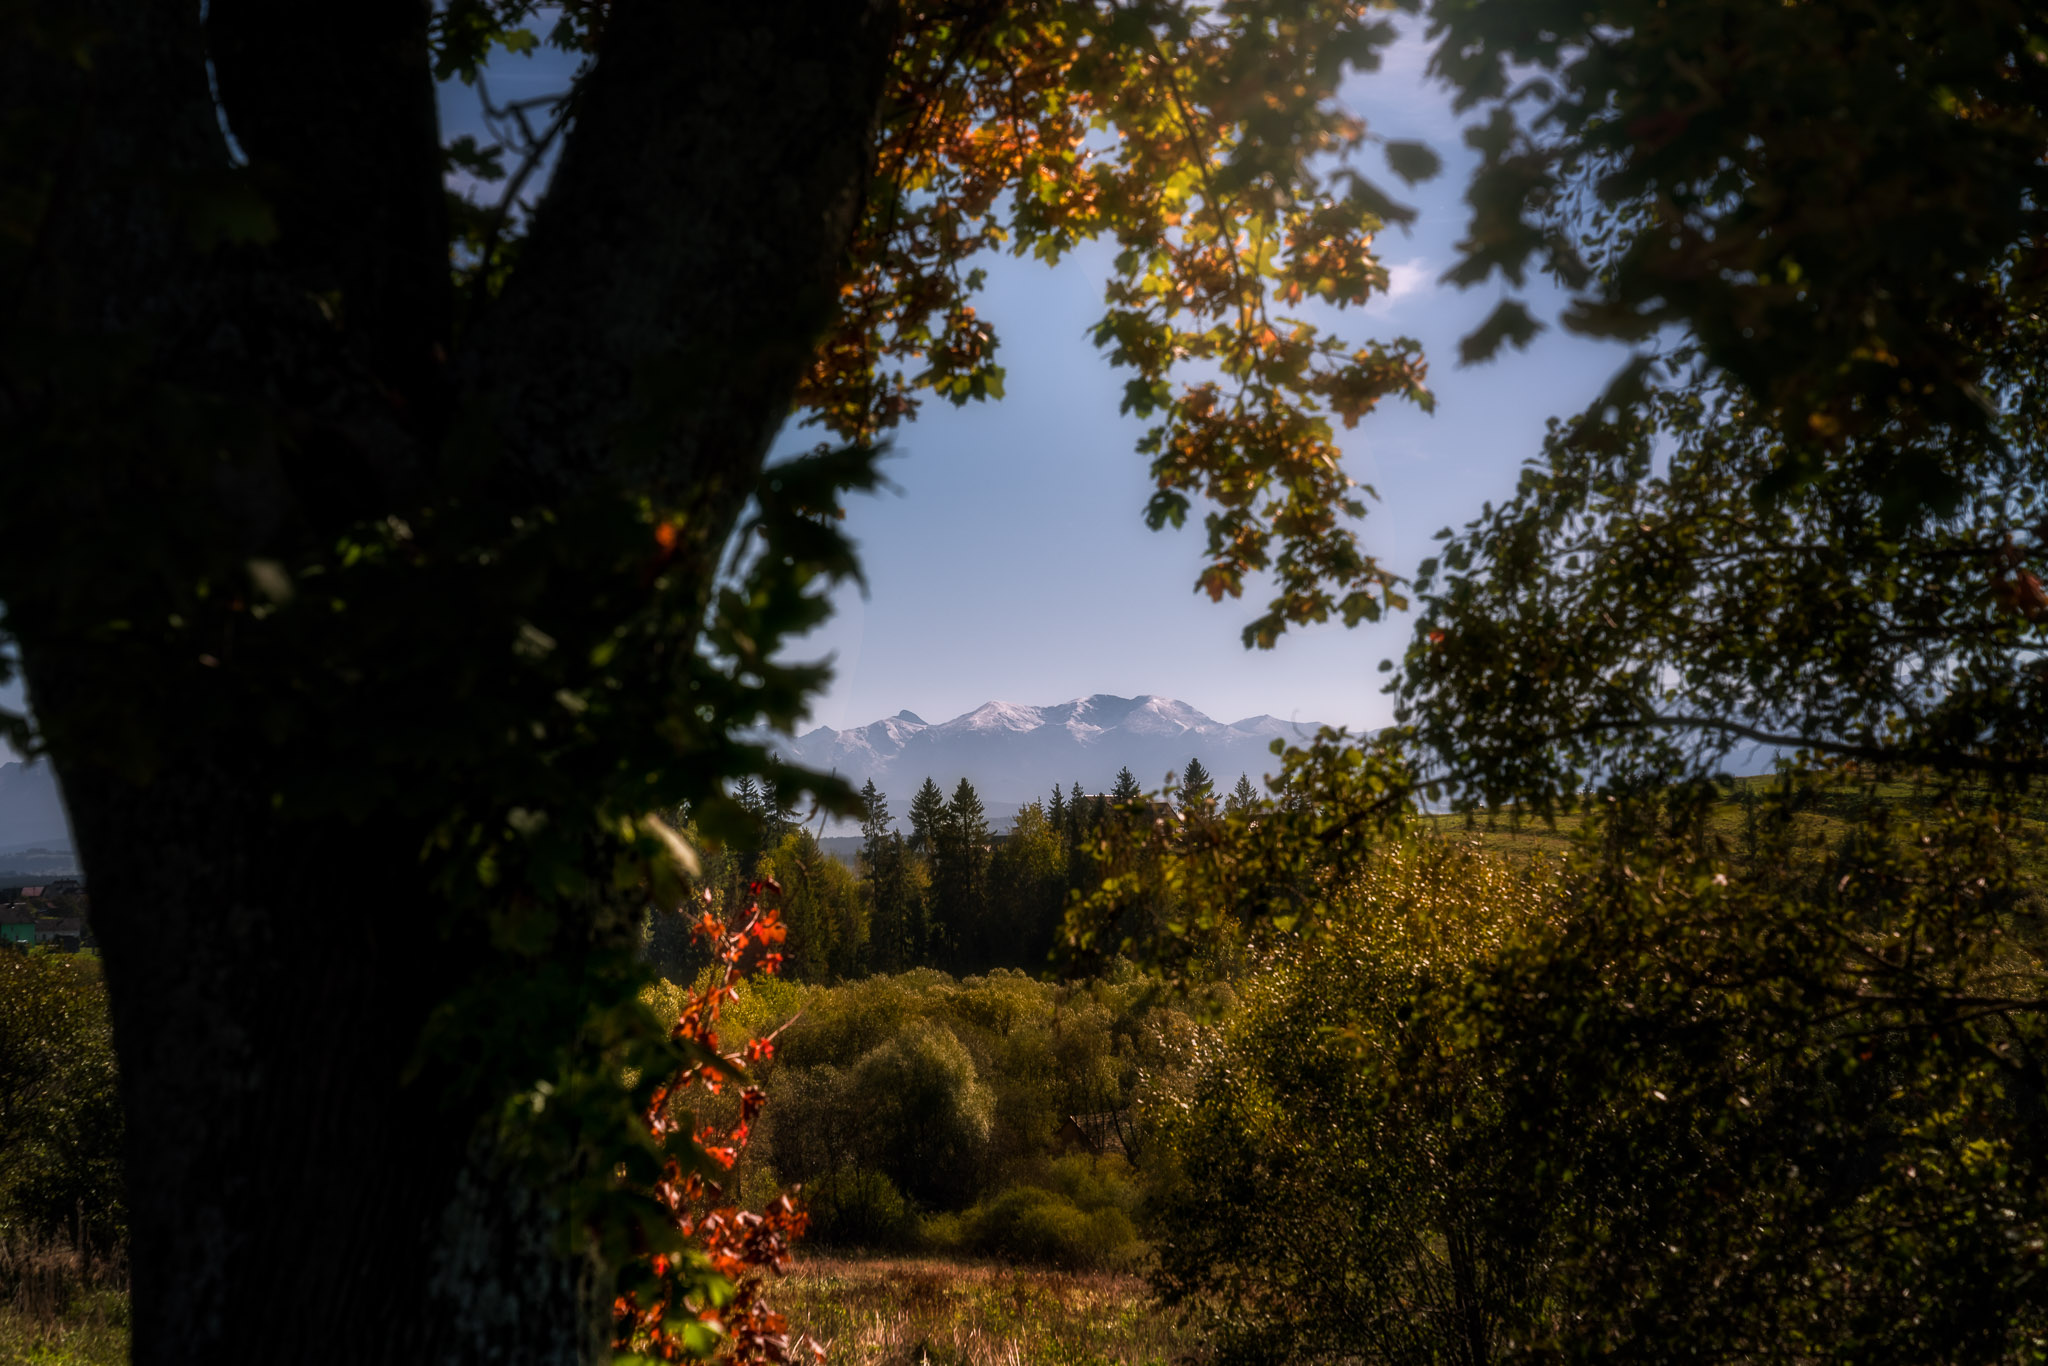 Tatra-mountain-view-framed-in-trees.jpg